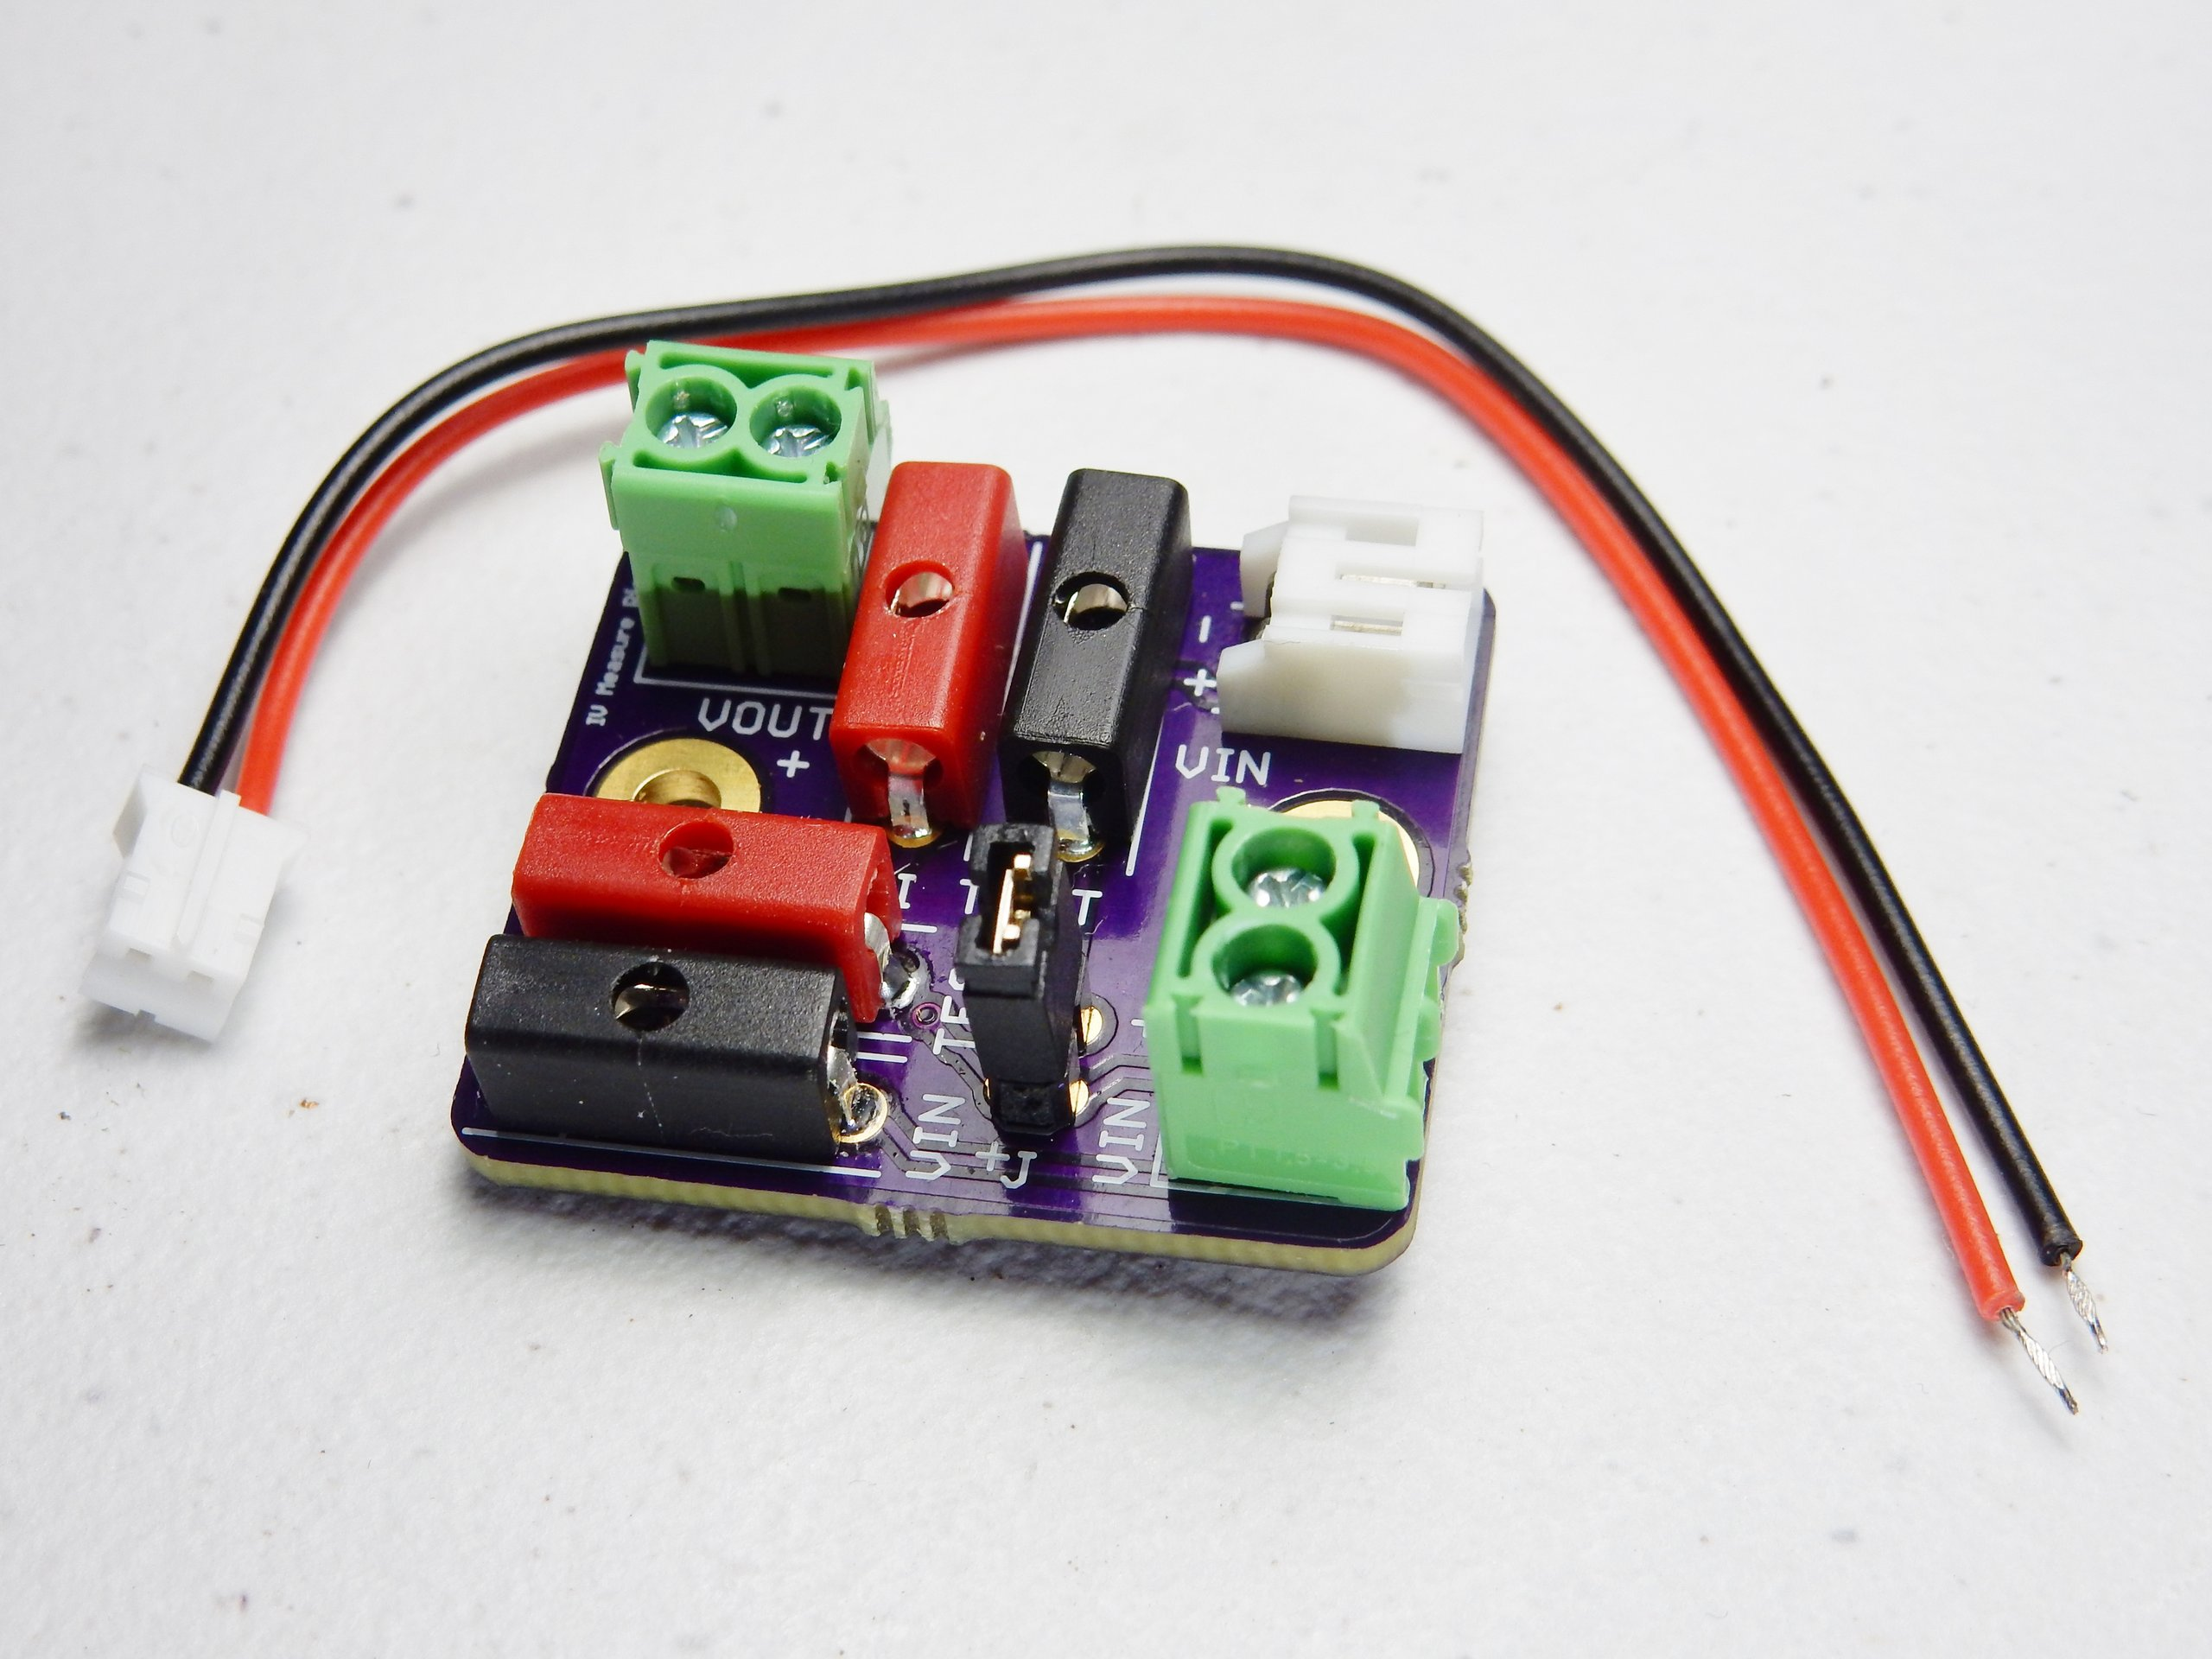 Electronics Test Jig : Power profiling voltage current test jig from